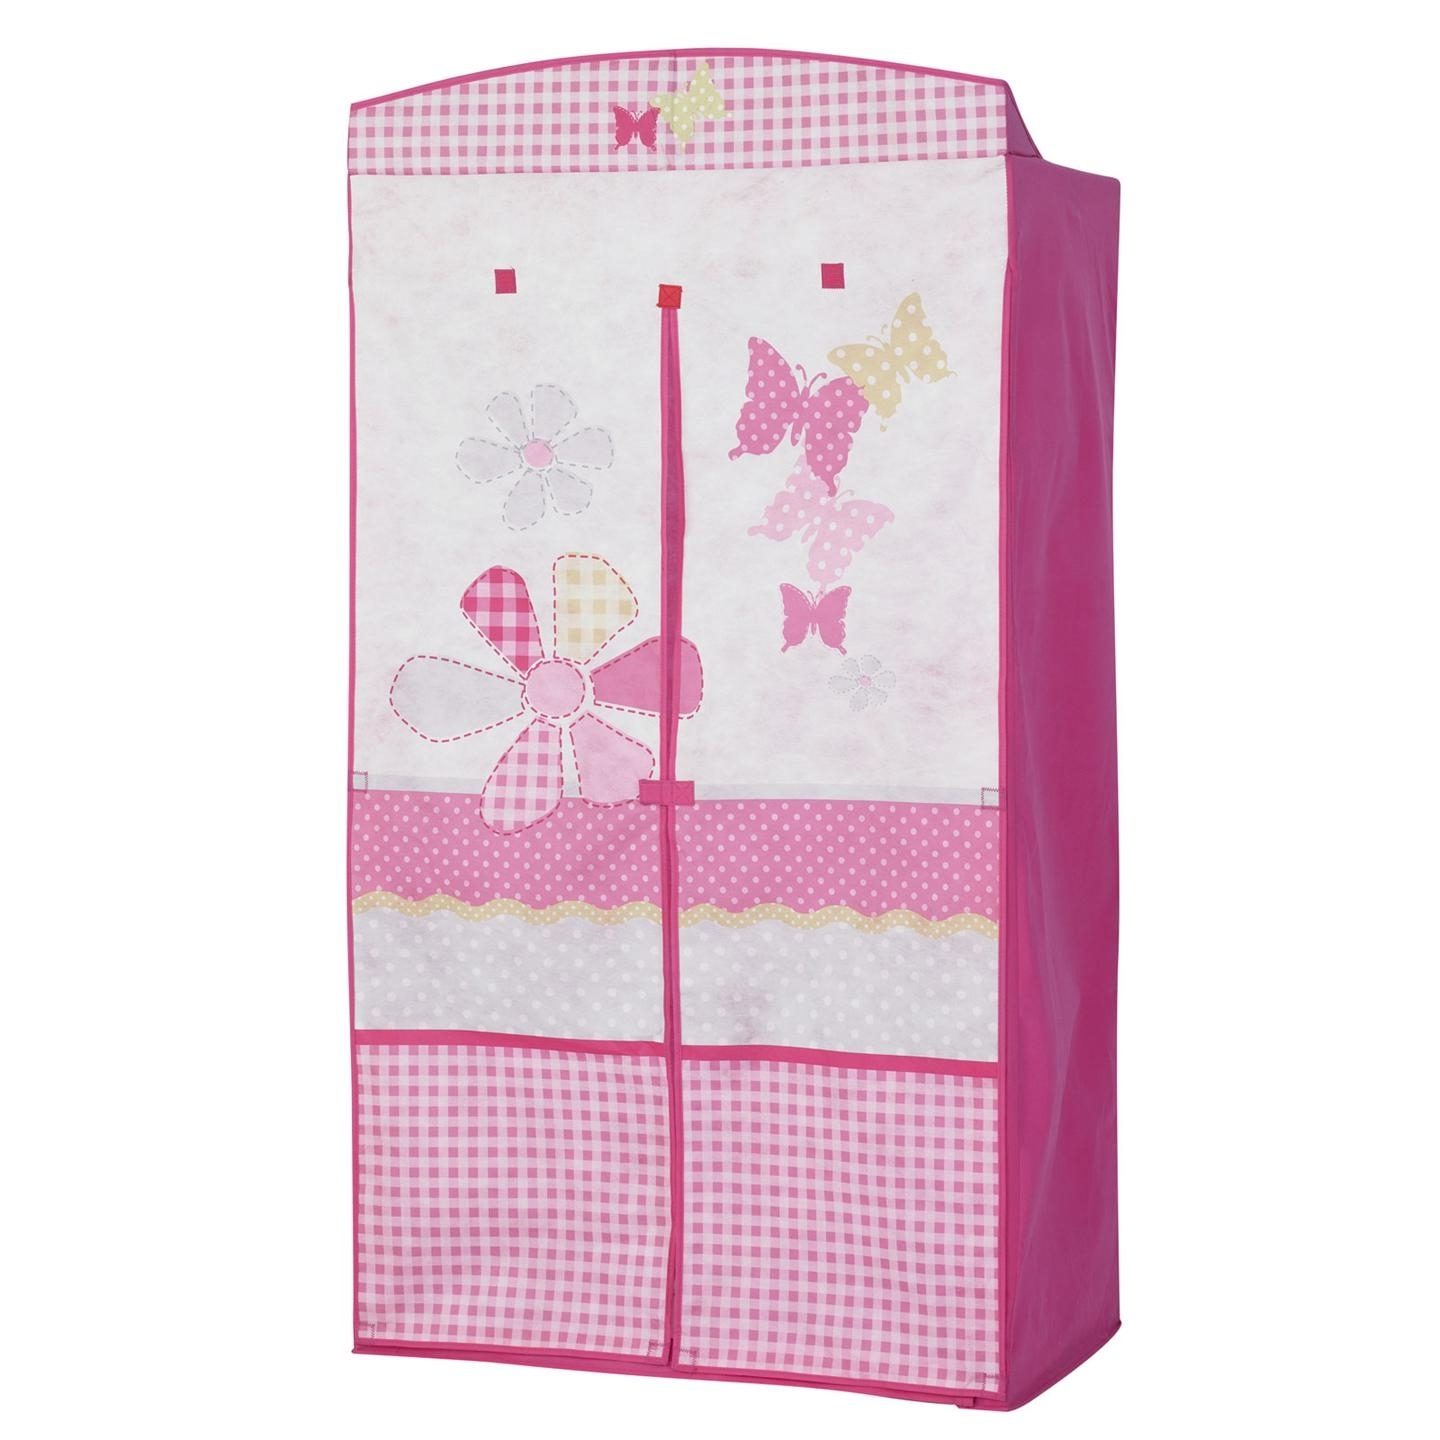 Childrens Pink Wardrobes Regarding Current Pink White Butterfly Fabric Wardrobe With Double Door Of (View 6 of 15)